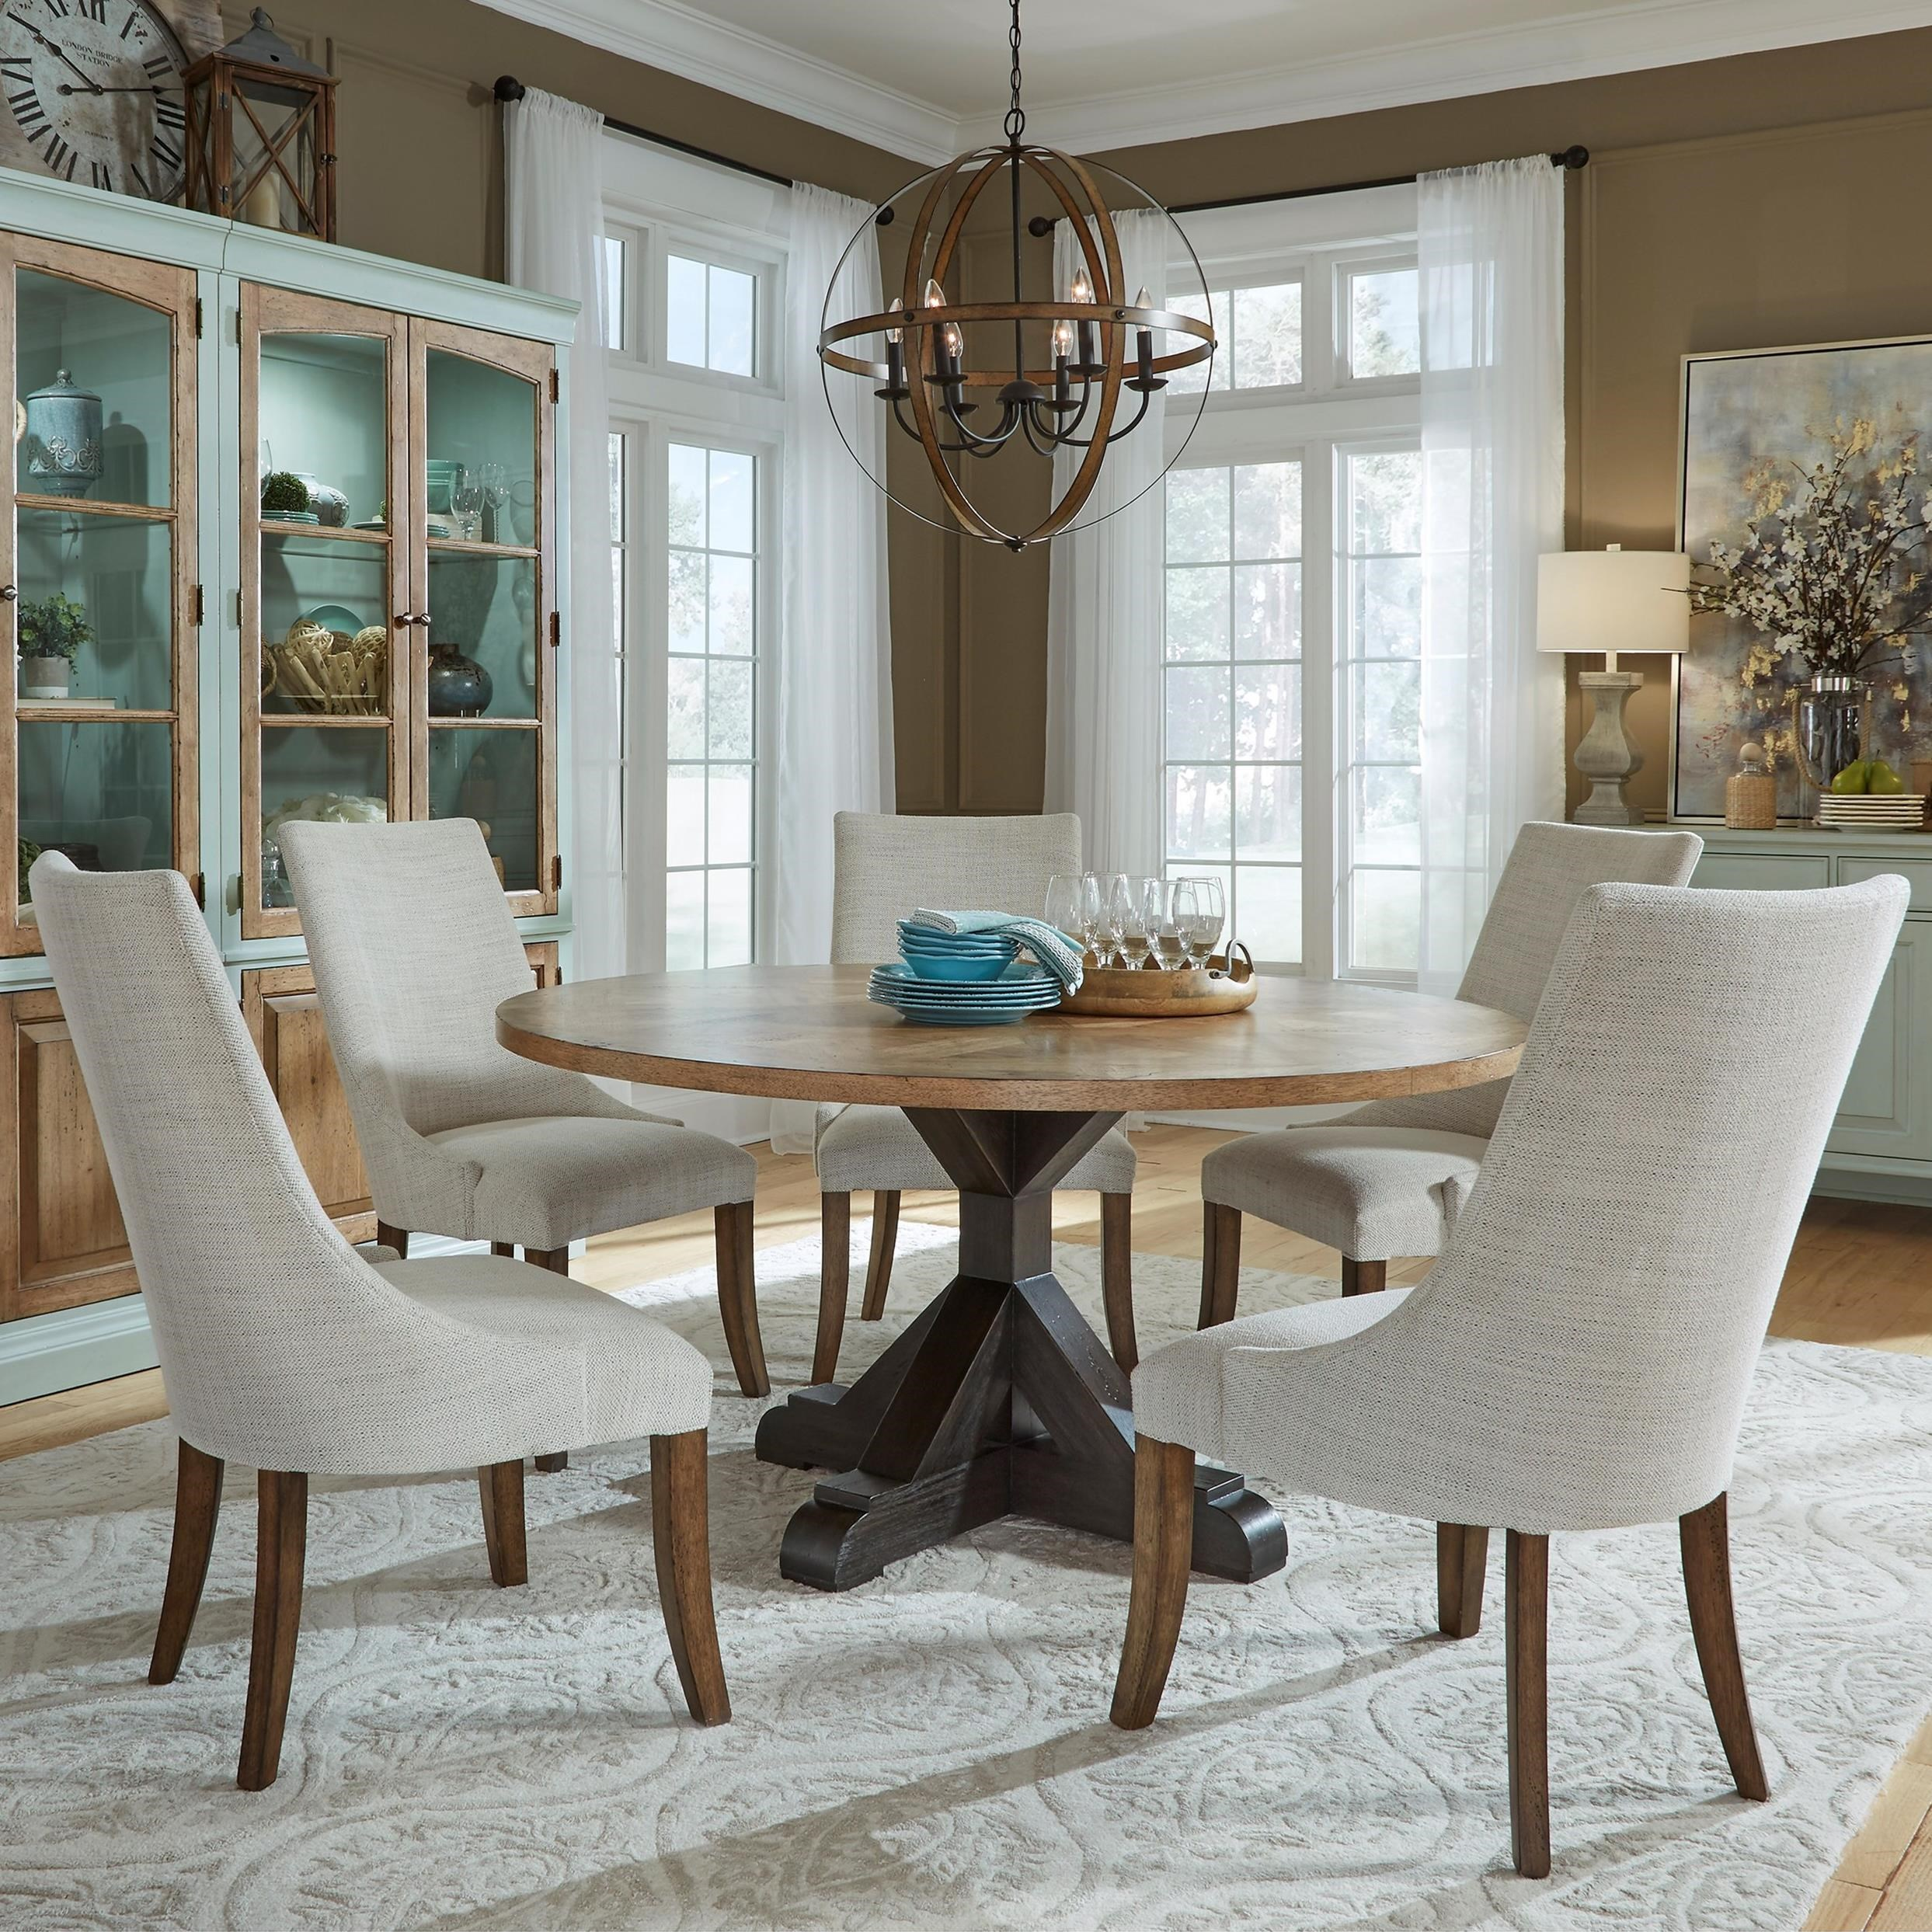 Pulaski Furniture The Art Of Dining 6 Piece Round Table And Upholstered Chair Set Upper Room Home Furnishings Dining 5 Piece Sets